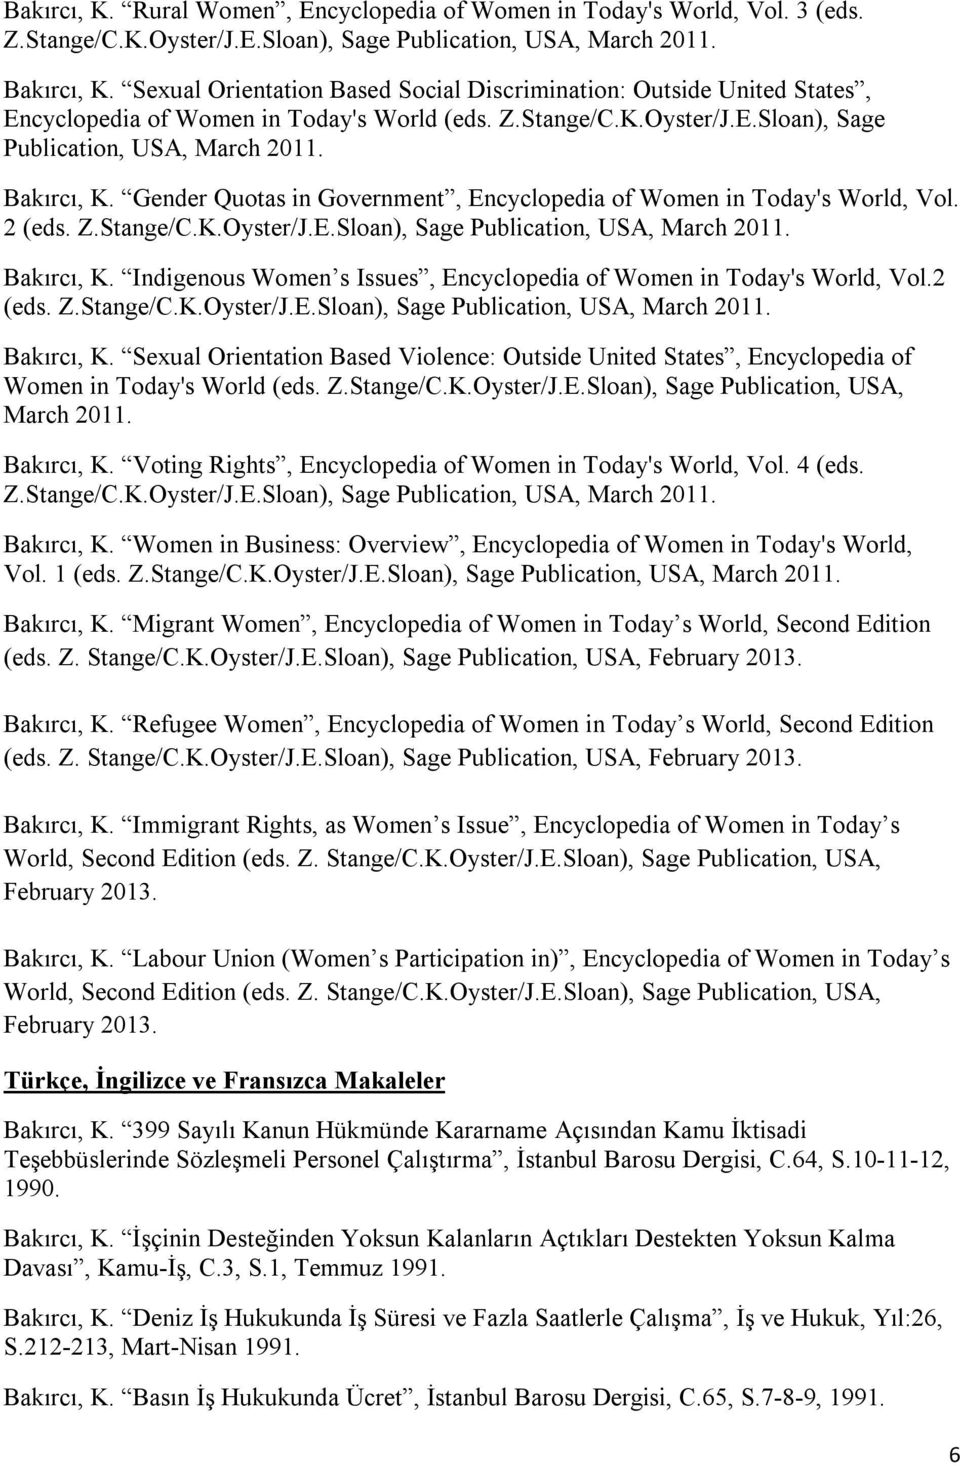 Gender Quotas in Government, Encyclopedia of Women in Today's World, Vol. 2 (eds. Z.Stange/C.K.Oyster/J.E.Sloan), Sage Publication, USA, March 2011. Bakırcı, K.